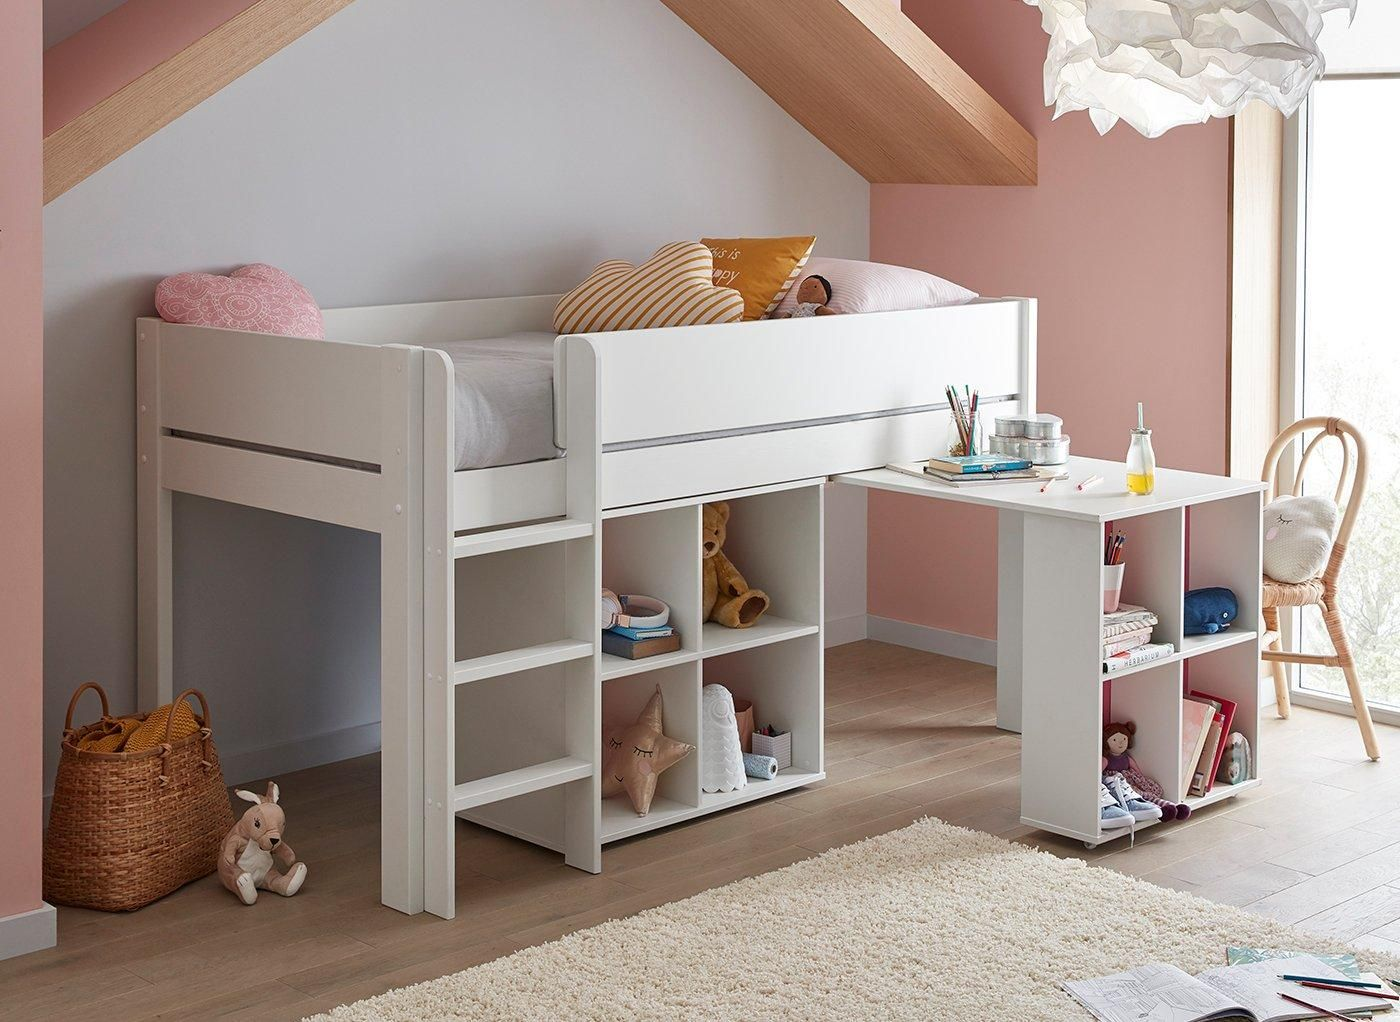 Tinsley Mid Sleeper Bed Frame With Storage Desk In 2020 Bed